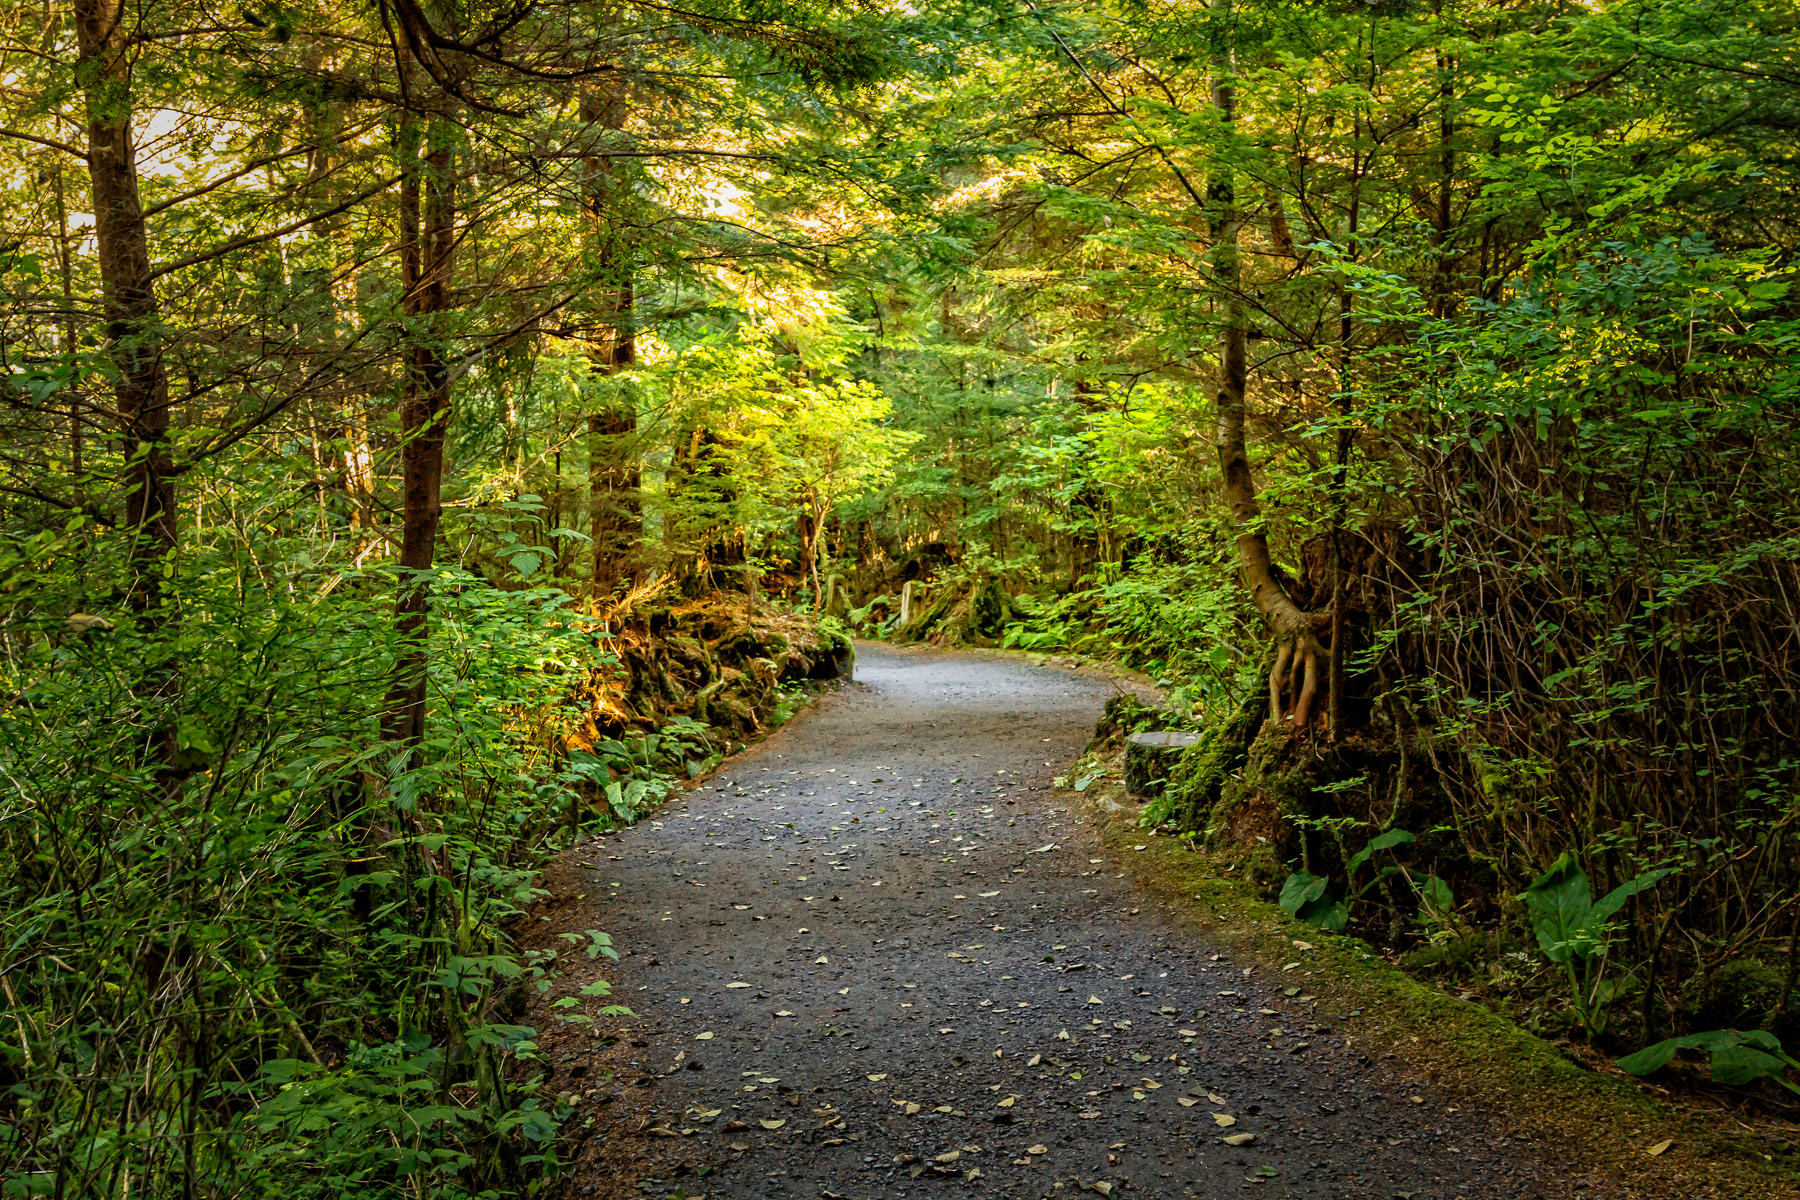 Sunlight illuminates the trees along a path through Ketchikan, Alaska's Totem Bight State Park.